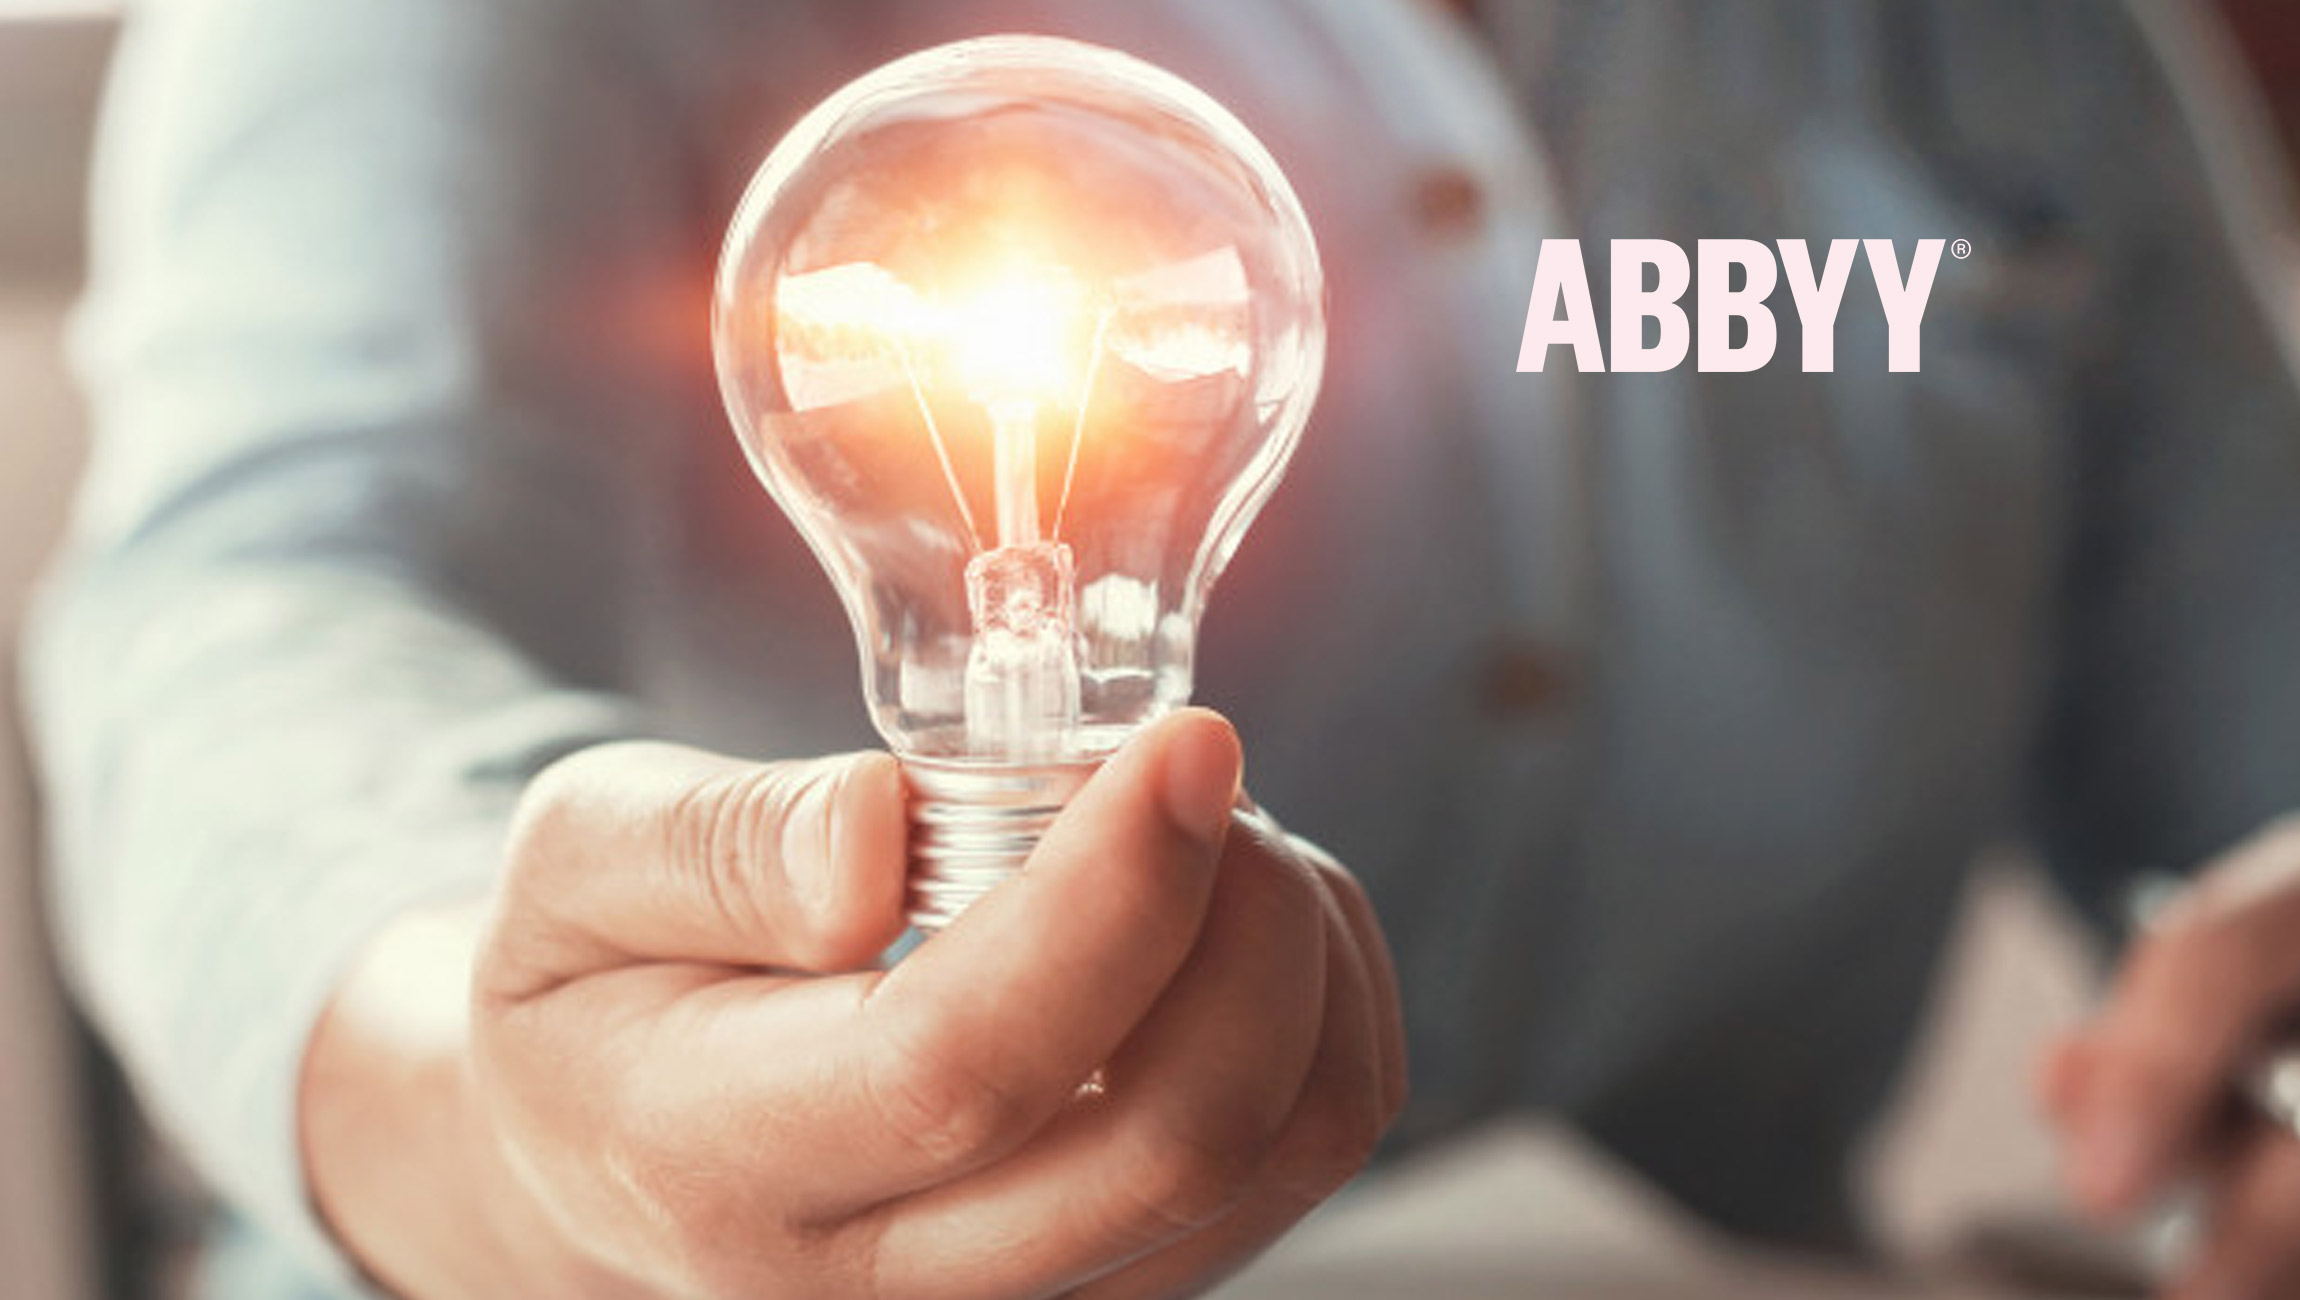 ABBYY Invests in Technology Innovation During Q2 2019